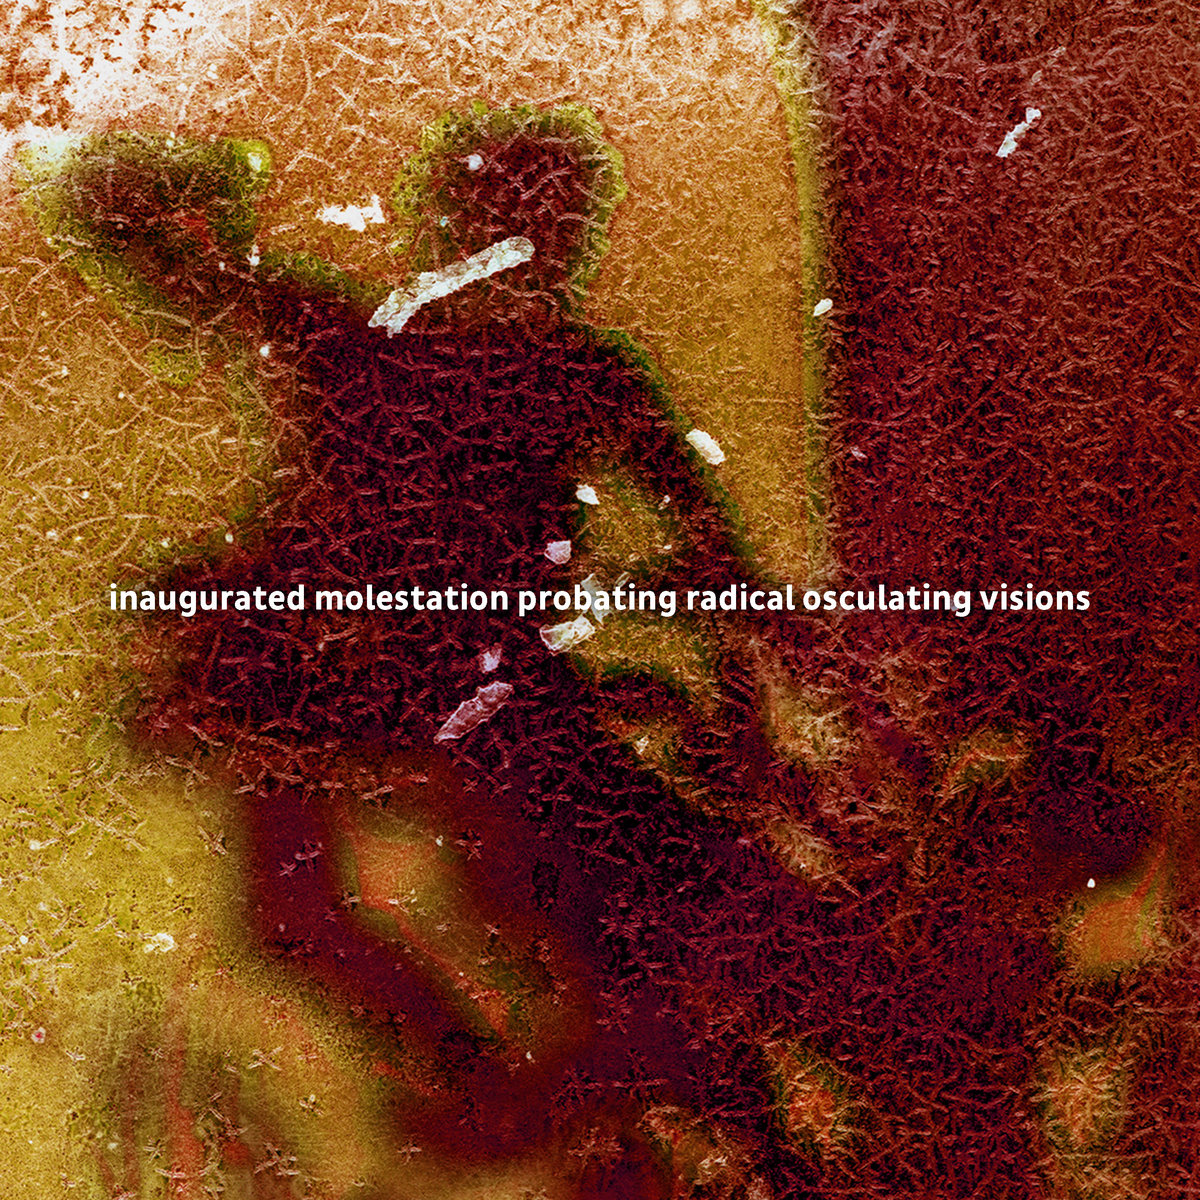 Various – inaugurated molestation probating radical osculating visions